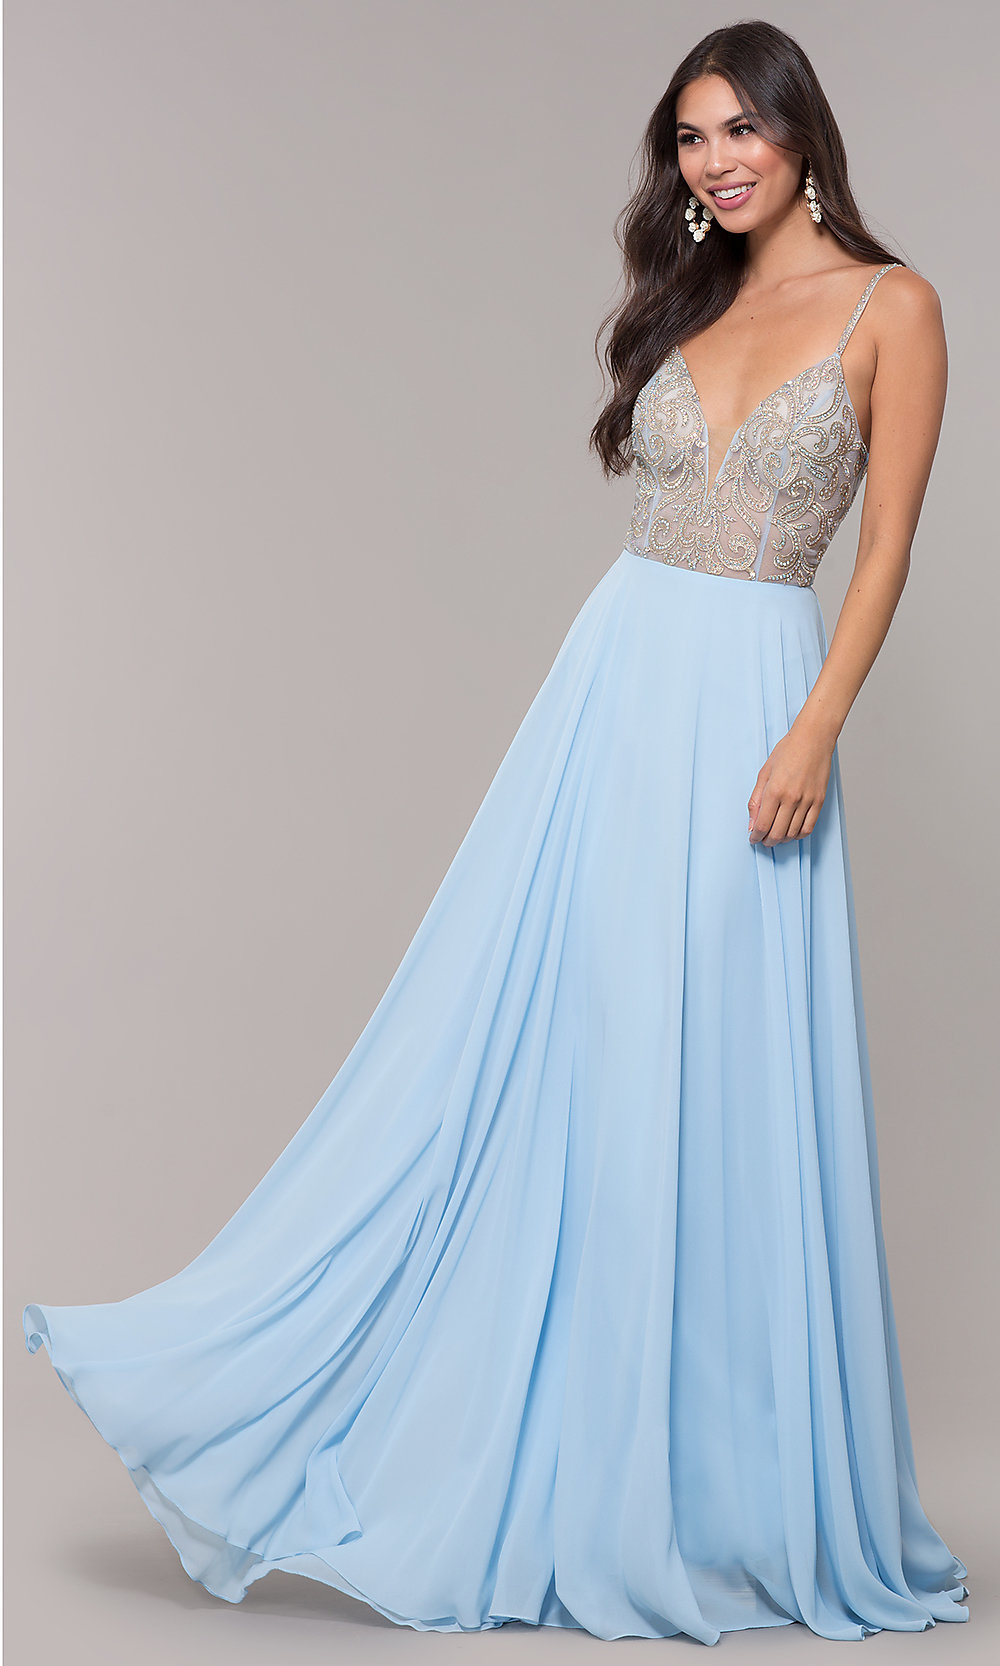 Long Chiffon V,Neck Prom Dress with Beaded Bodice